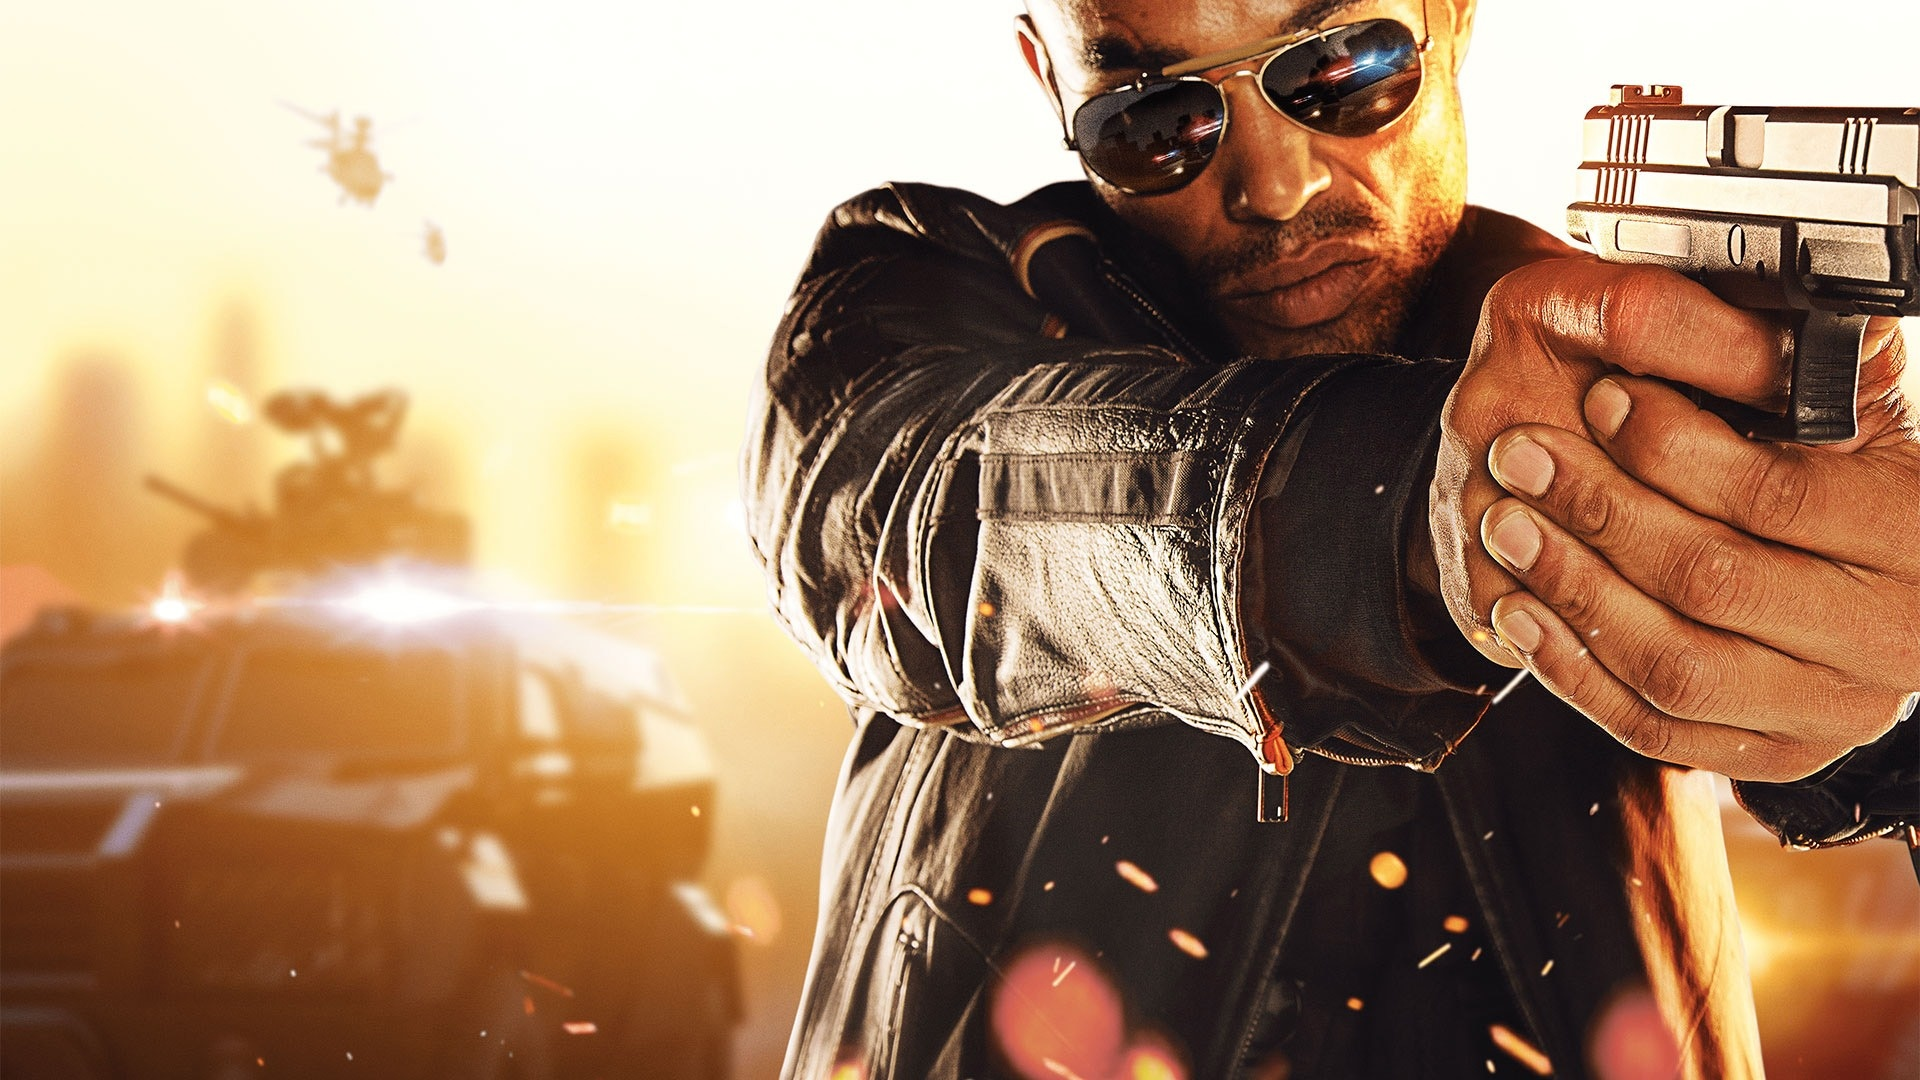 battlefield-hardline-criminal-activity-dlc-to-feat